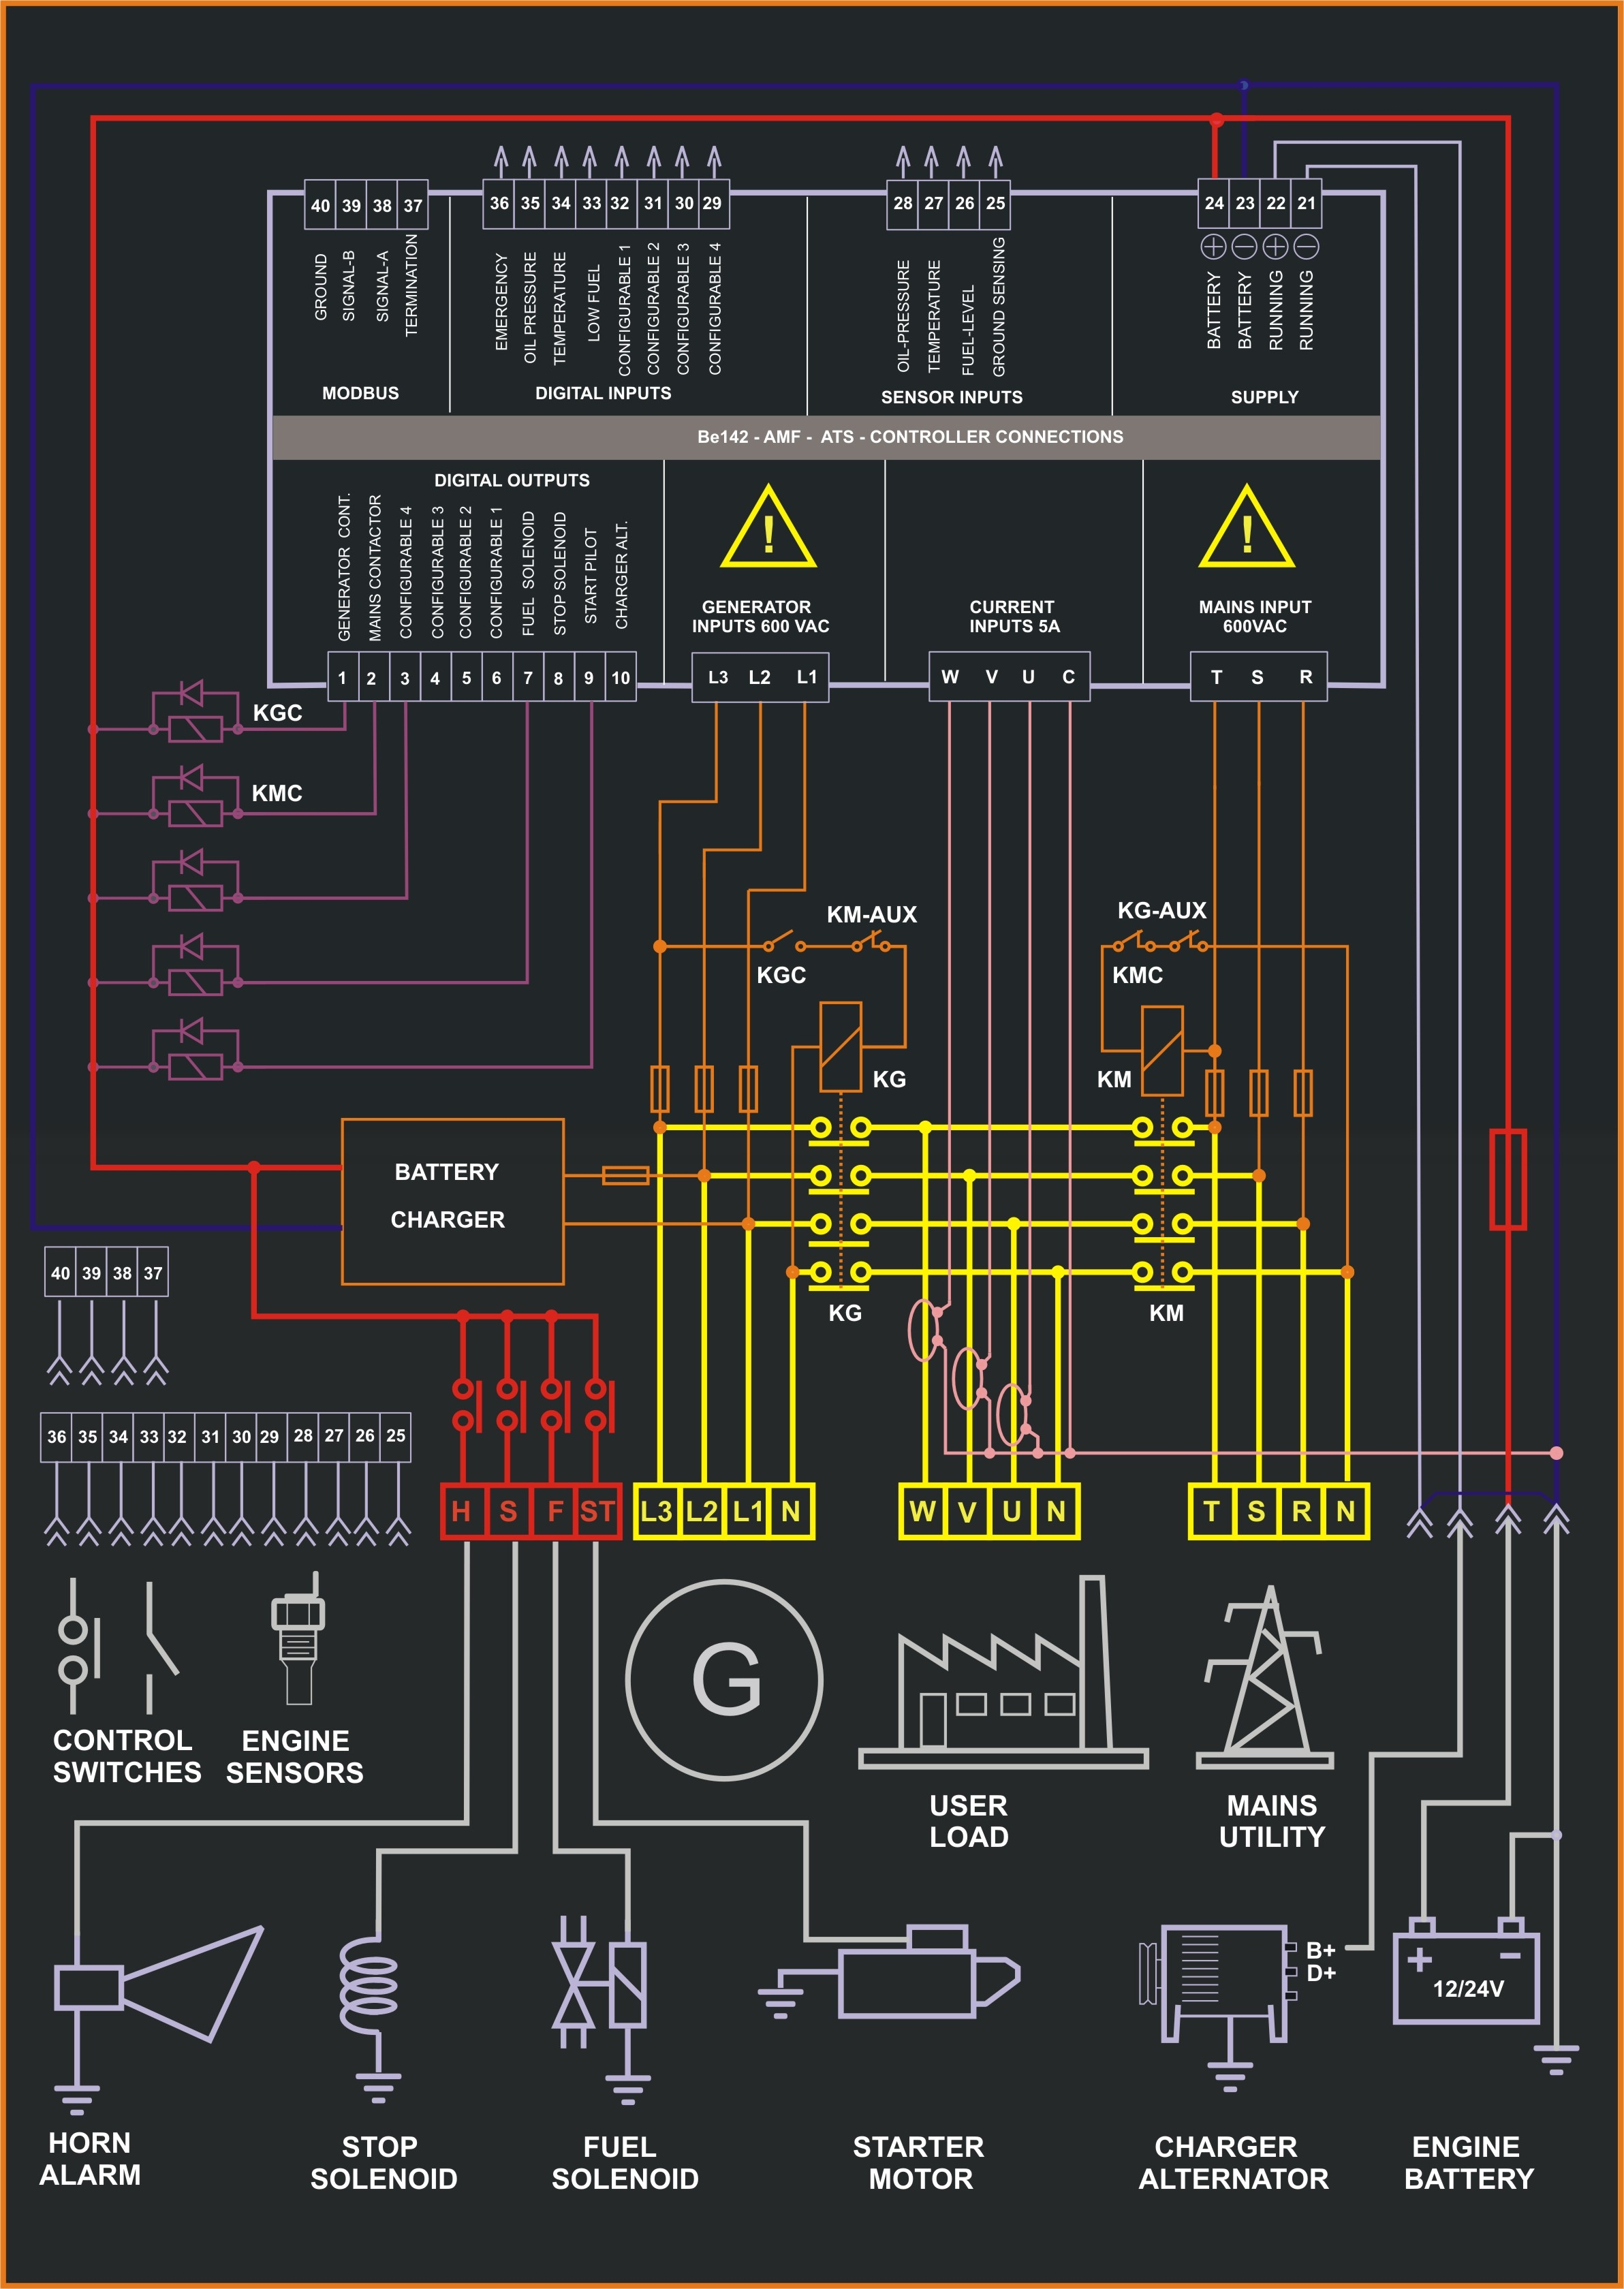 Lighting Circuit Diagrams Pdf Schematics Data Wiring Led Lights Plc Control Panel Diagram 32 Images Mifinder Co Sample Electrical